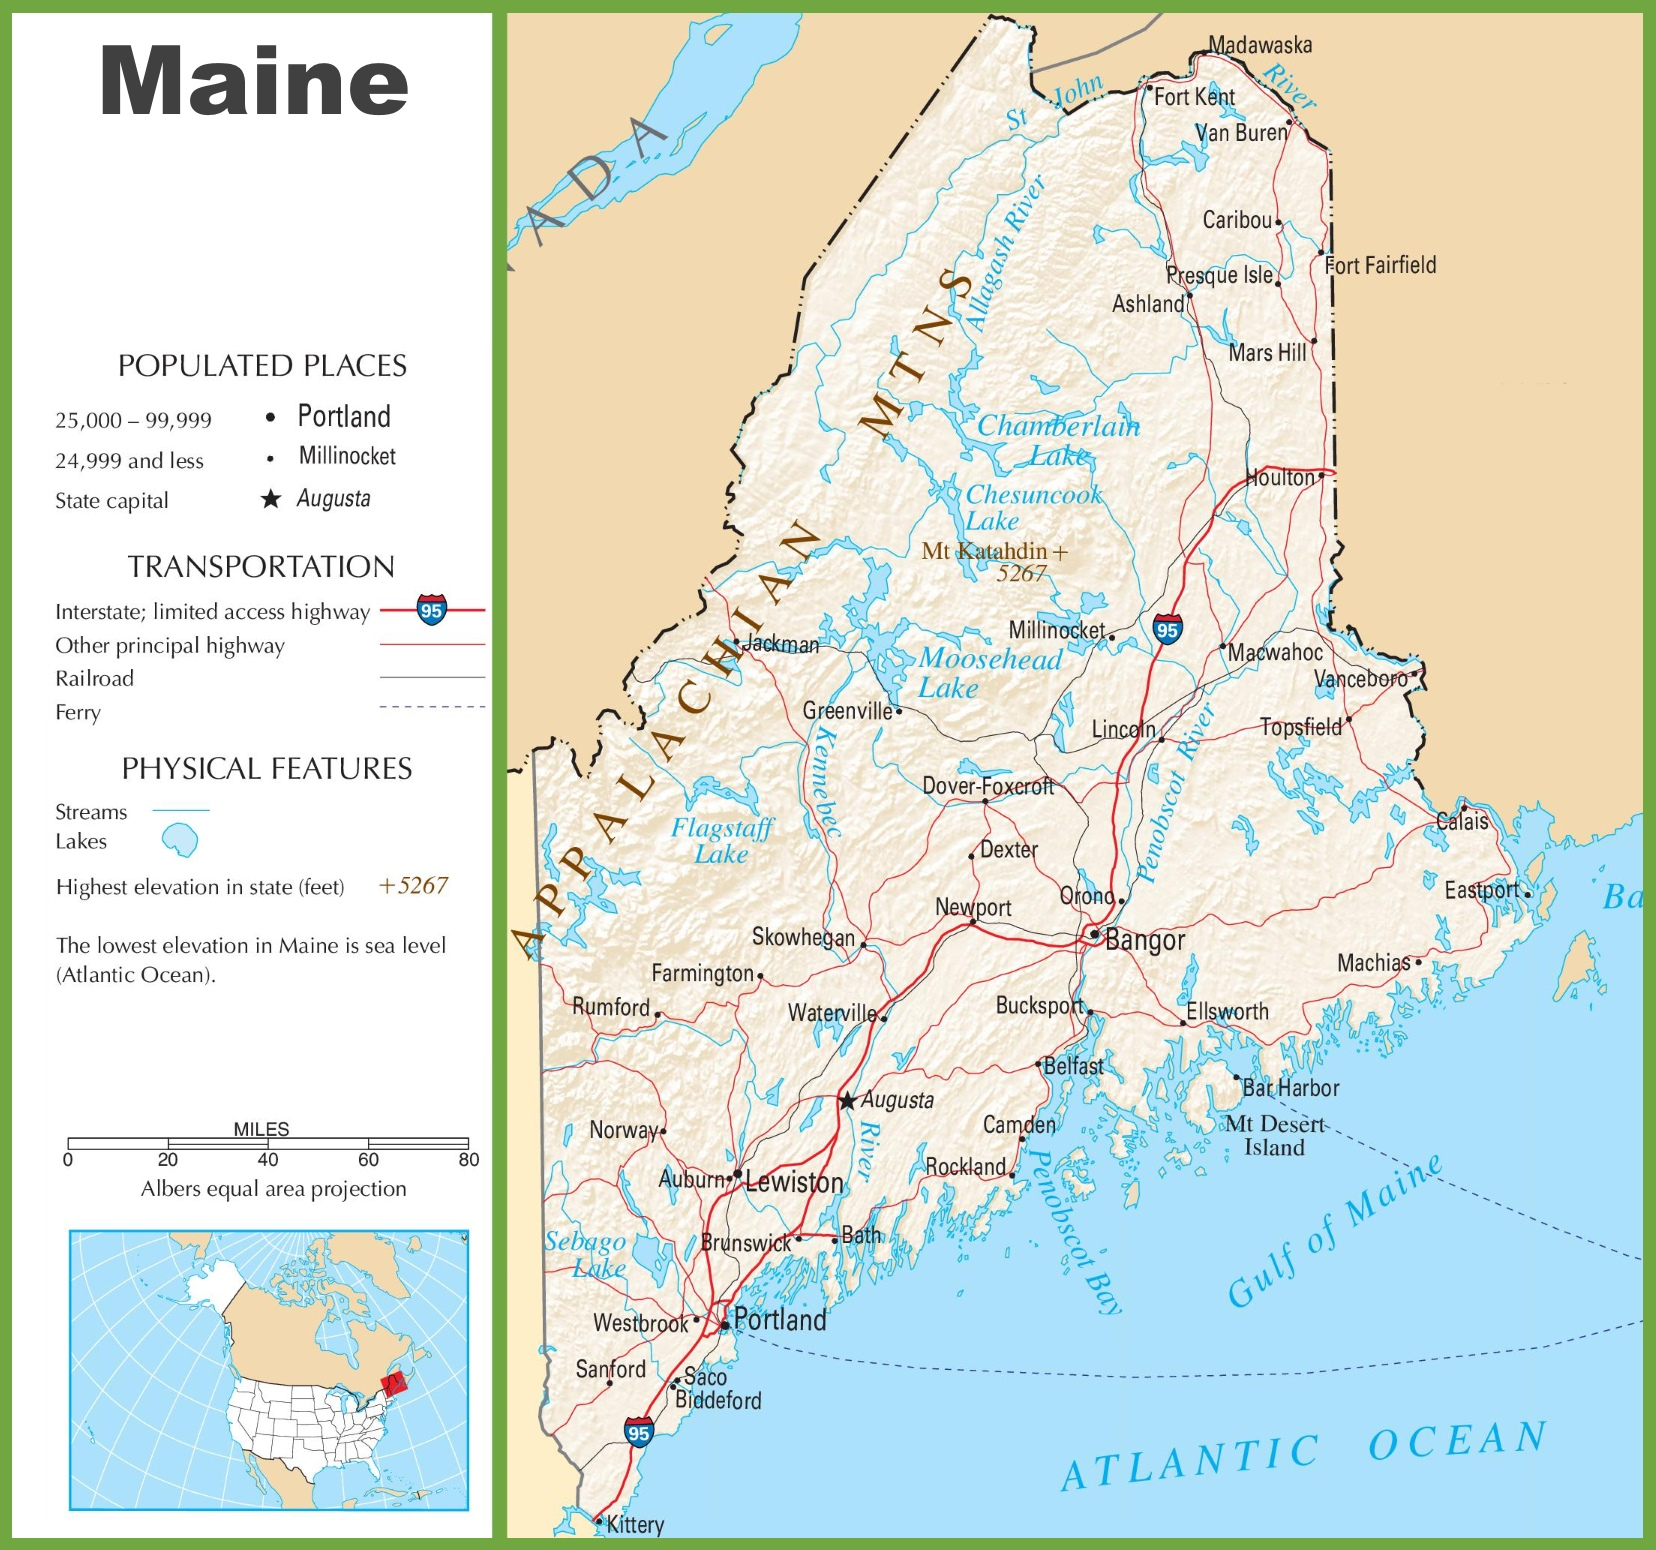 maine state maps  usa  maps of maine (me) - maine highway map